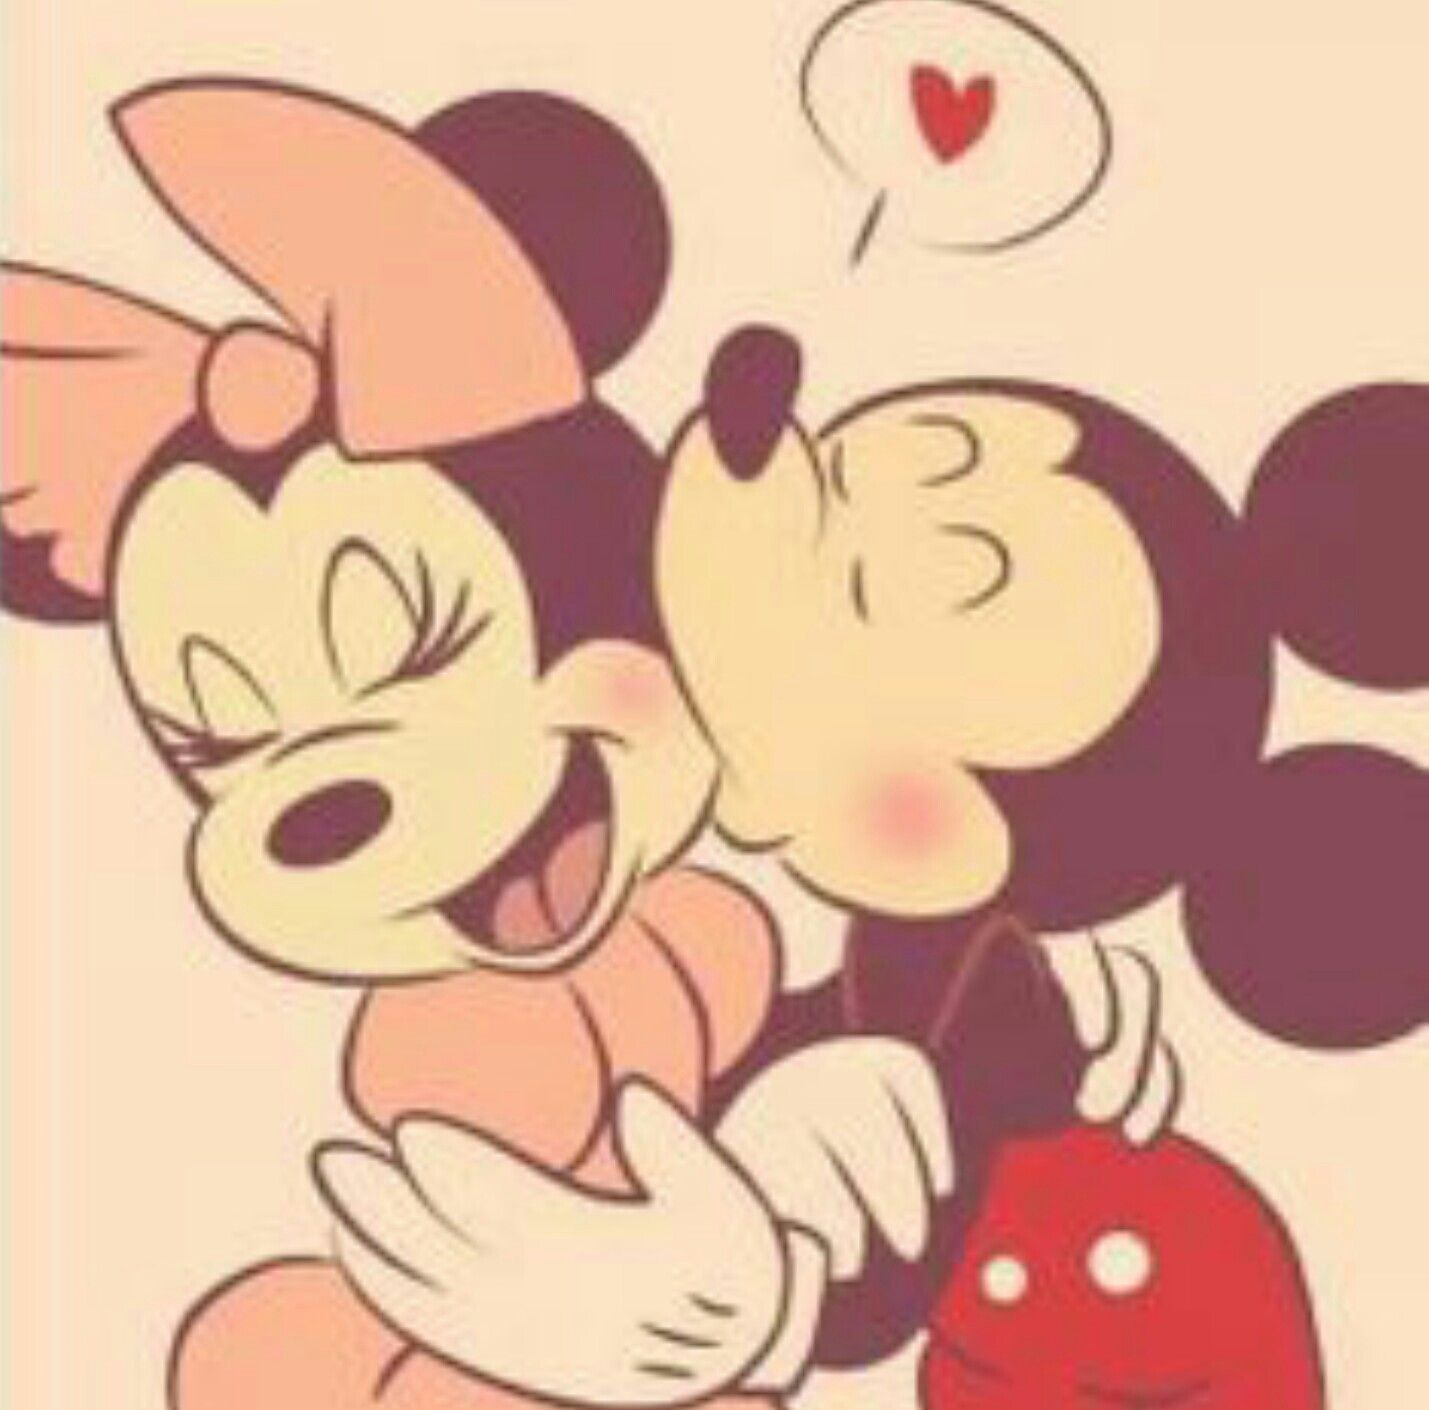 Day 9 Favorite Couple OG's Mickey and Minnie Mouse